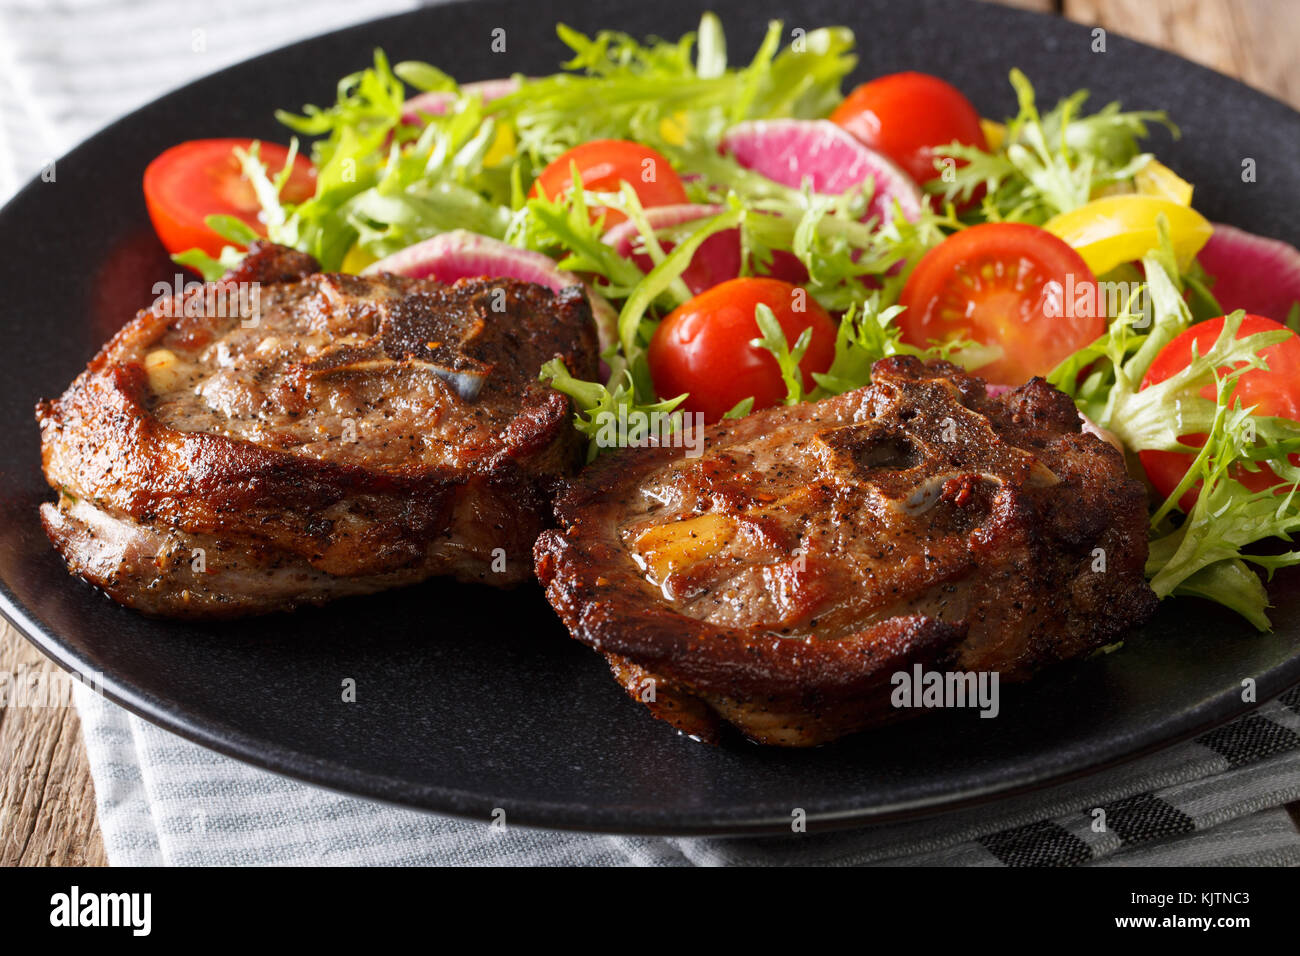 Spicy delicious lamb steak and vegetable salad from radish, tomatoes, pepper and lettuce close-up on a plate. horizontal - Stock Image